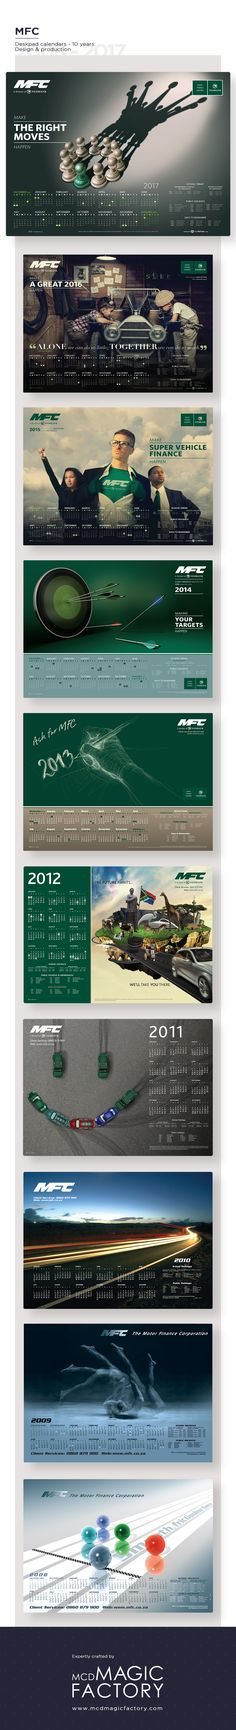 Client: MFC, a division of Nedbank Direct Mailer, Desk Pad, 2017 Design, Division, Campaign, Branding, Direct Mail, Brand Management, Brand Identity